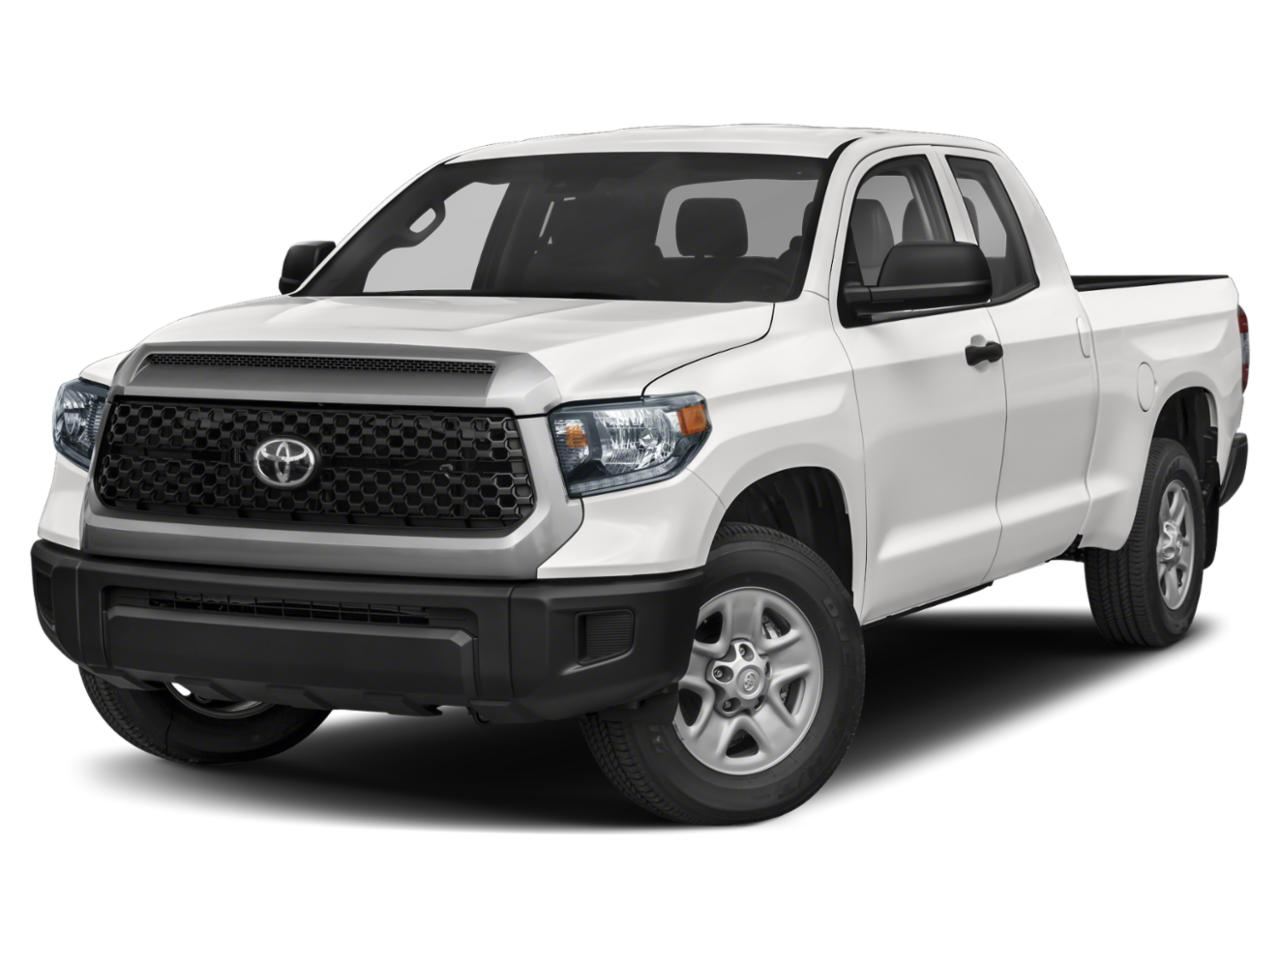 2018 Toyota Tundra 2WD Vehicle Photo in Grapevine, TX 76051